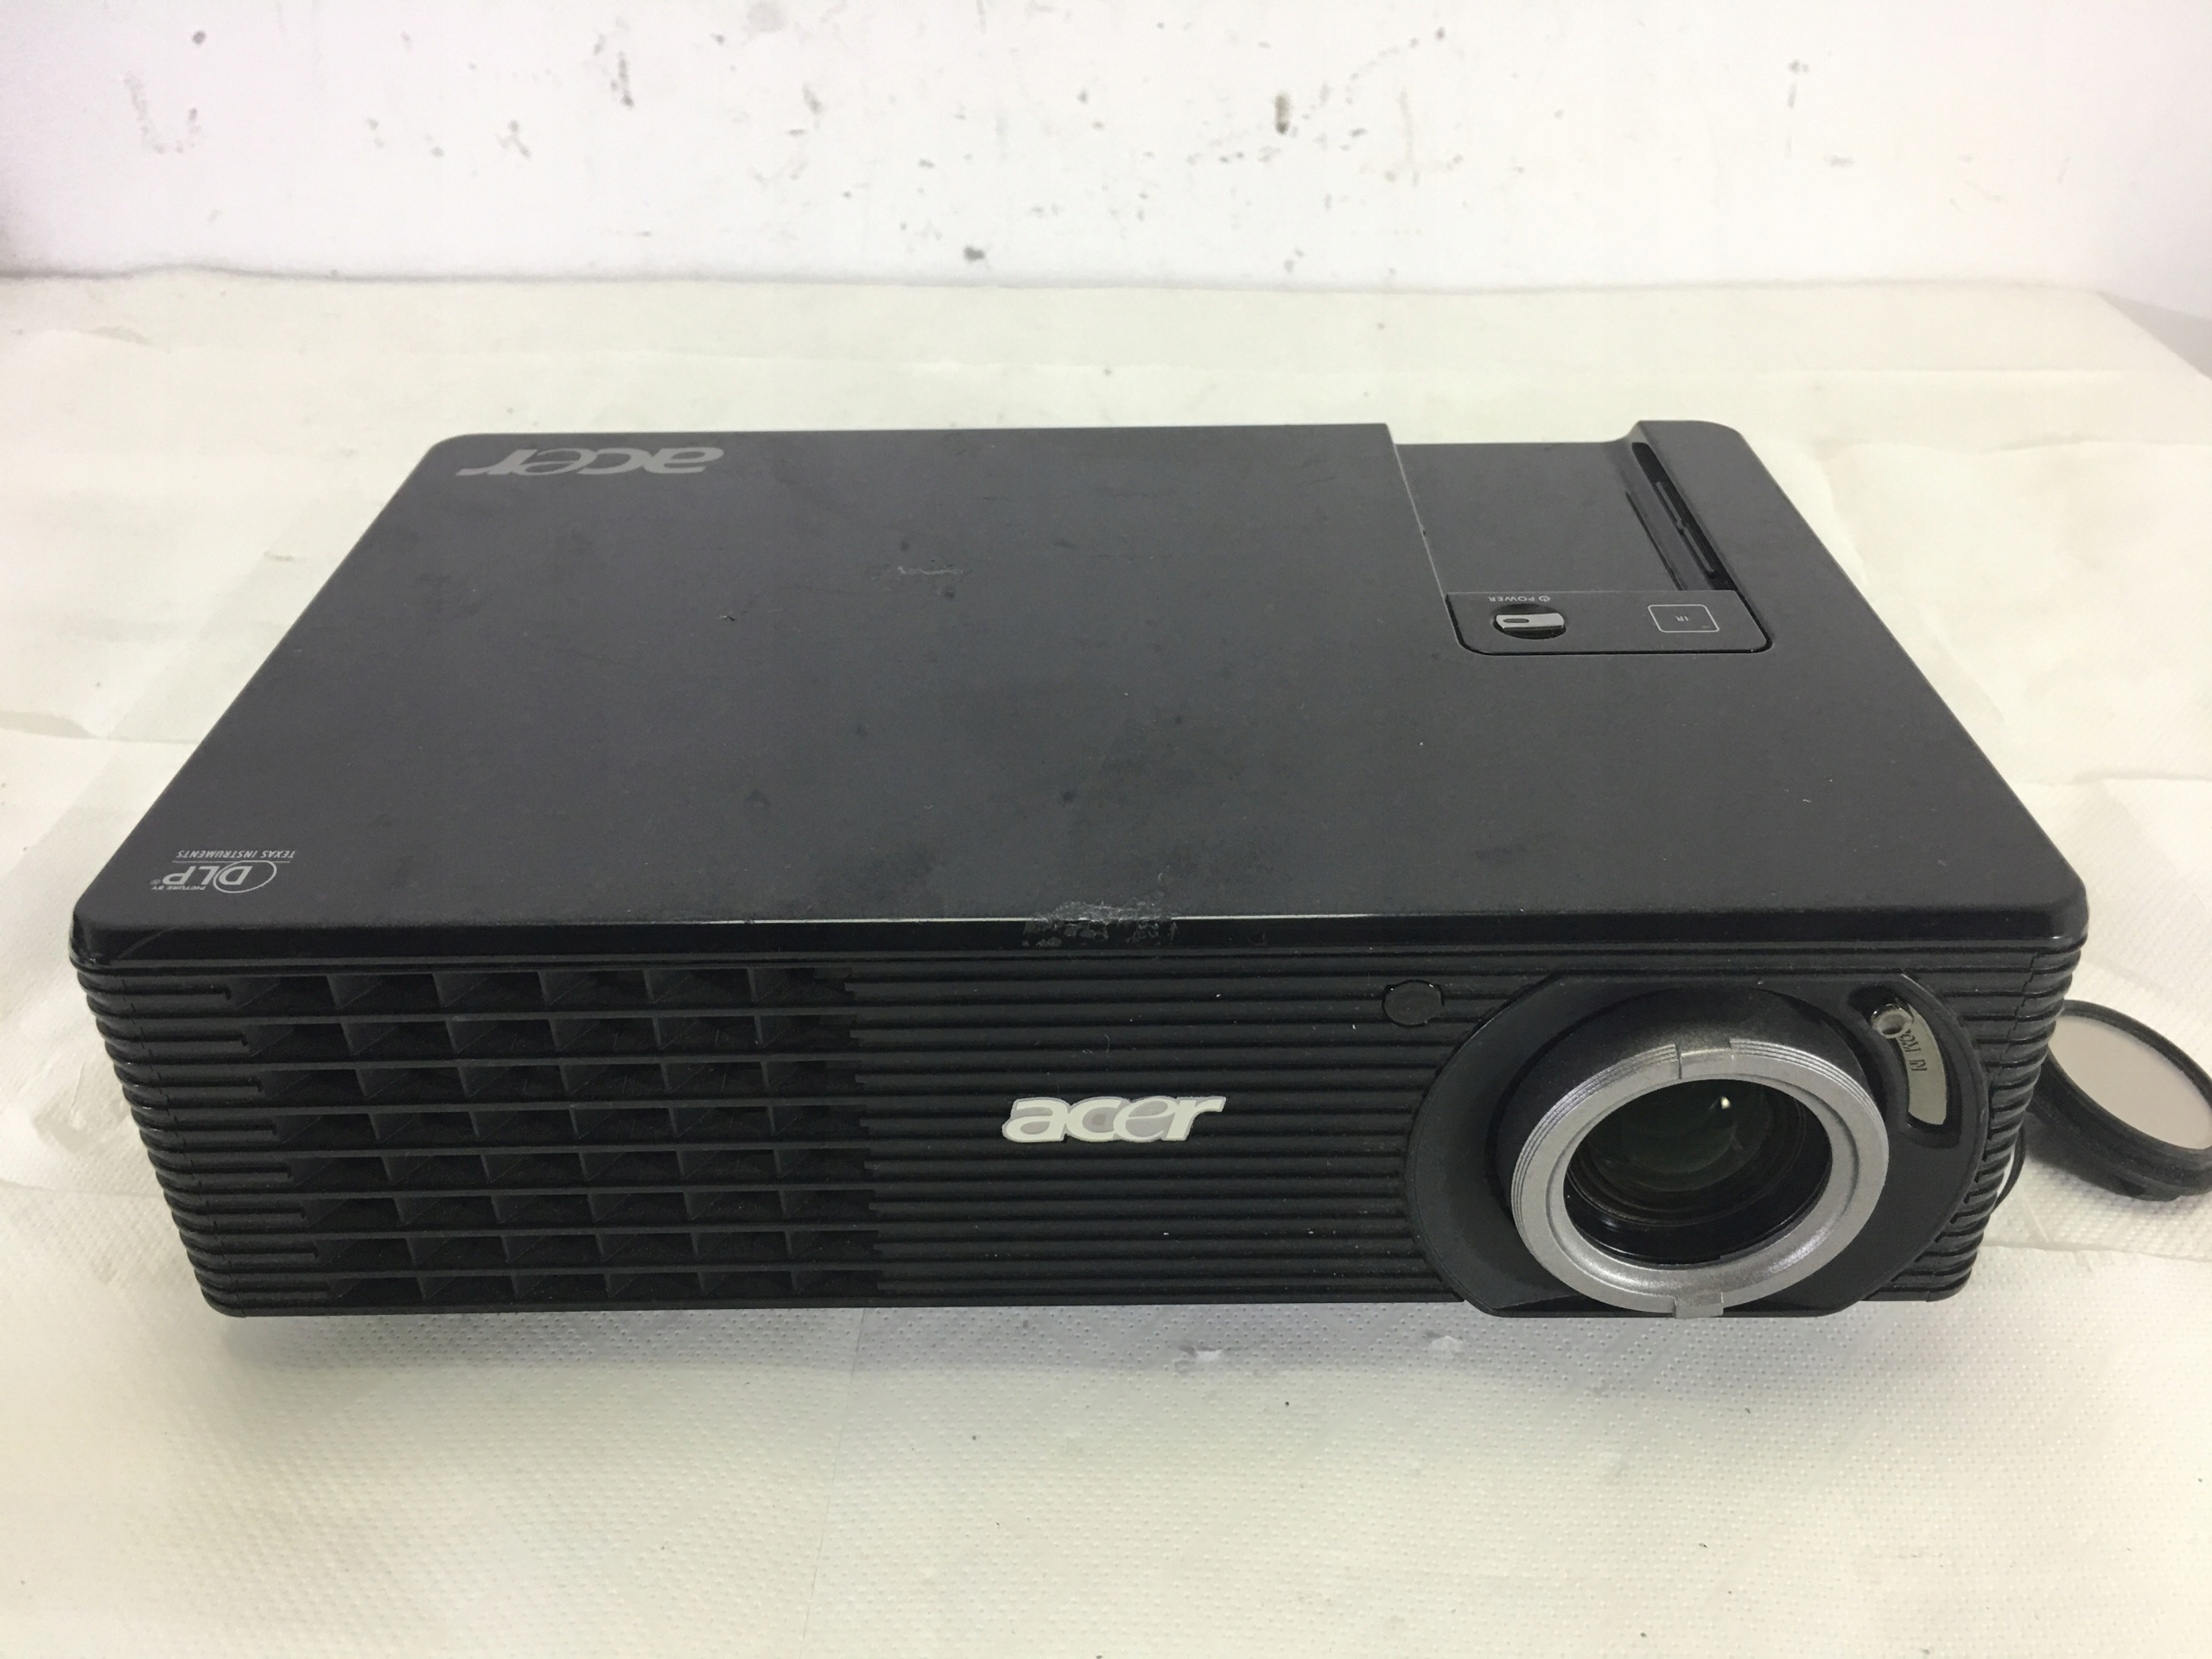 ACER X1260 DRIVER